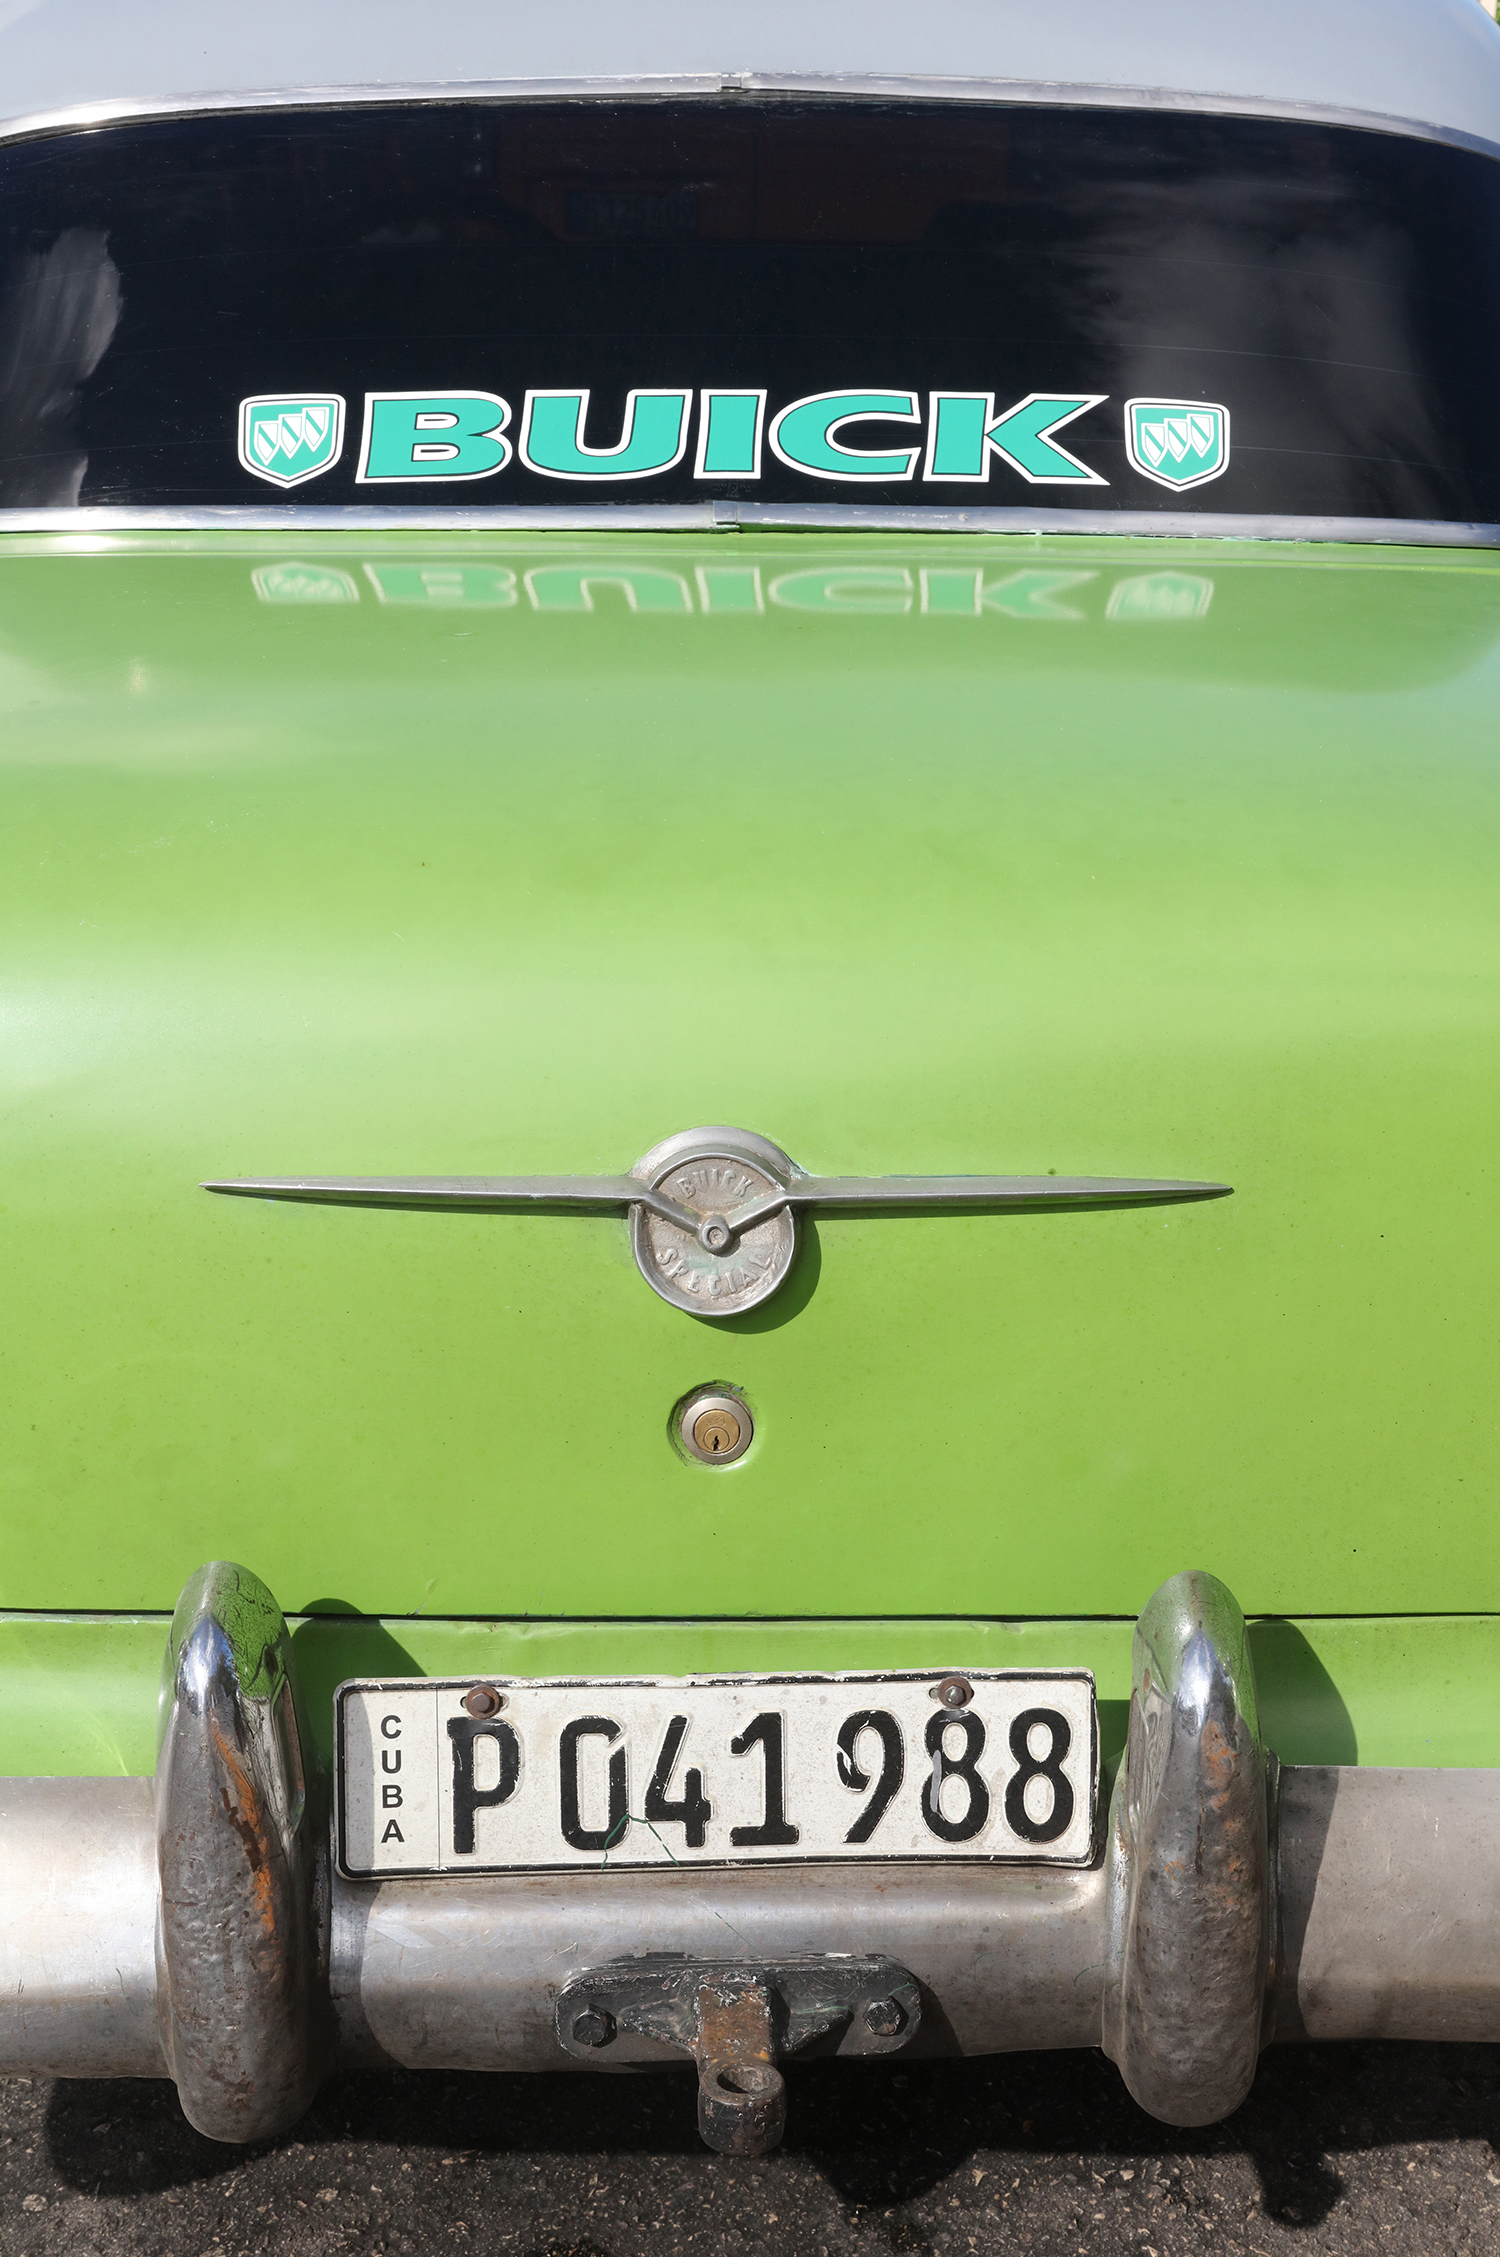 The Green Buick